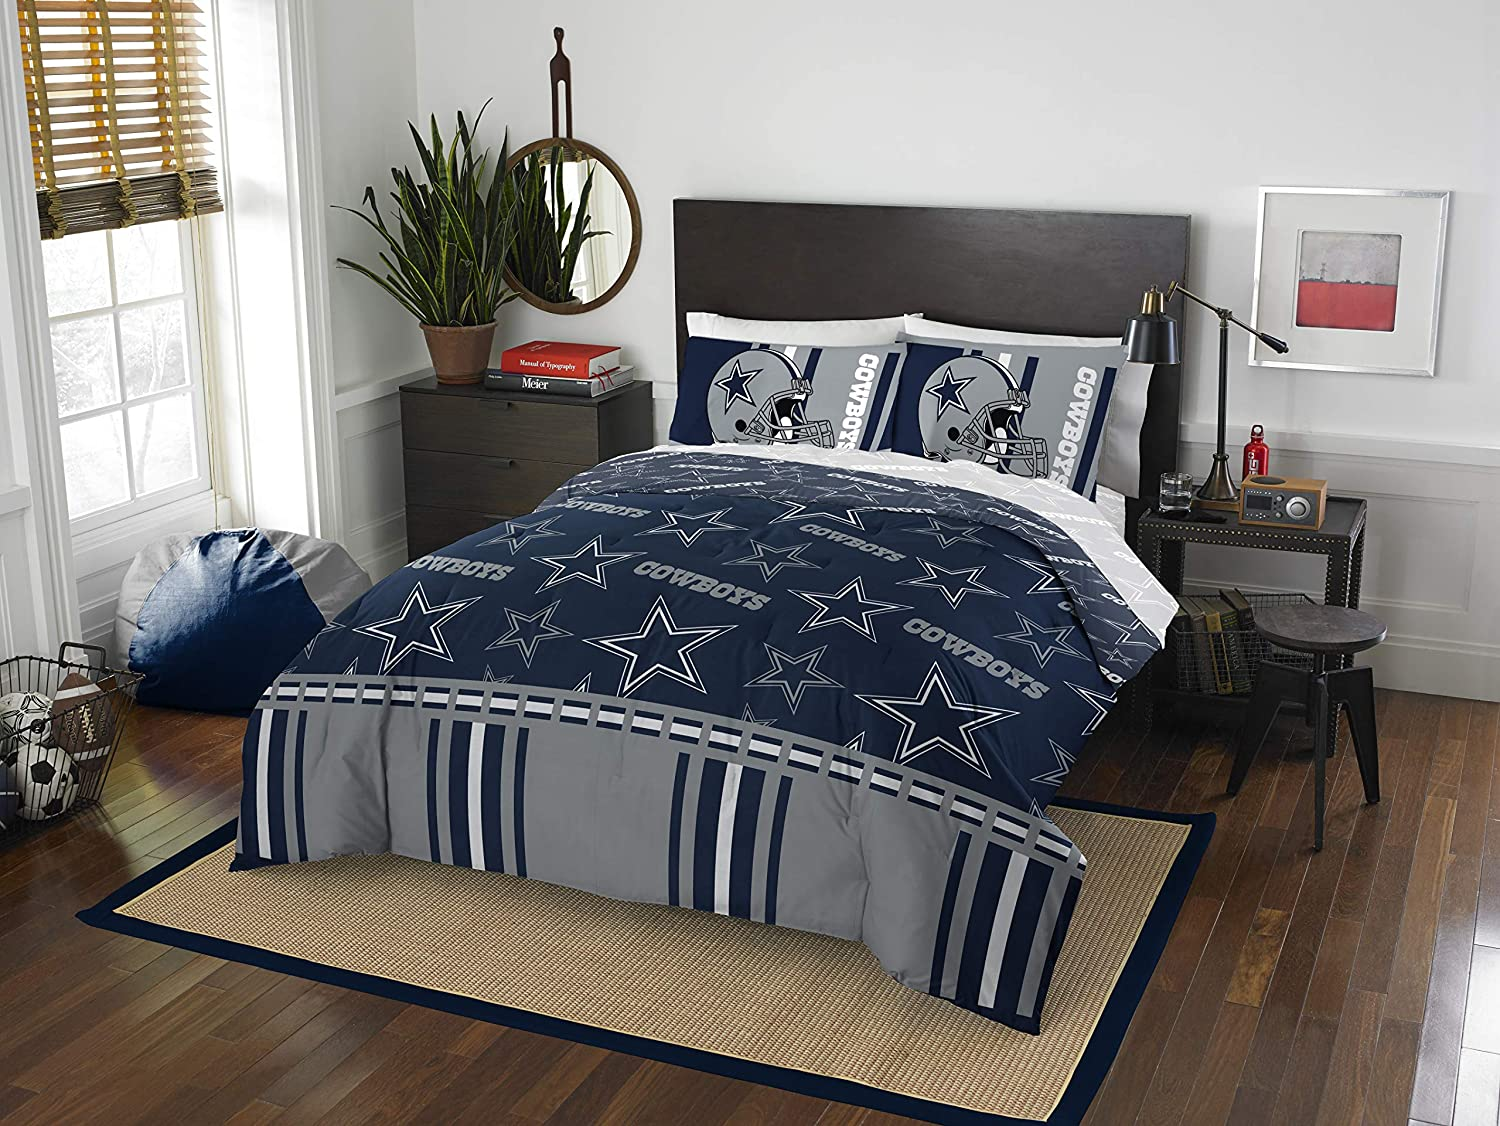 Officially Licensed Oakland Mall NFL Dallas Cowboys Full 78 a Set Bed in famous Bag